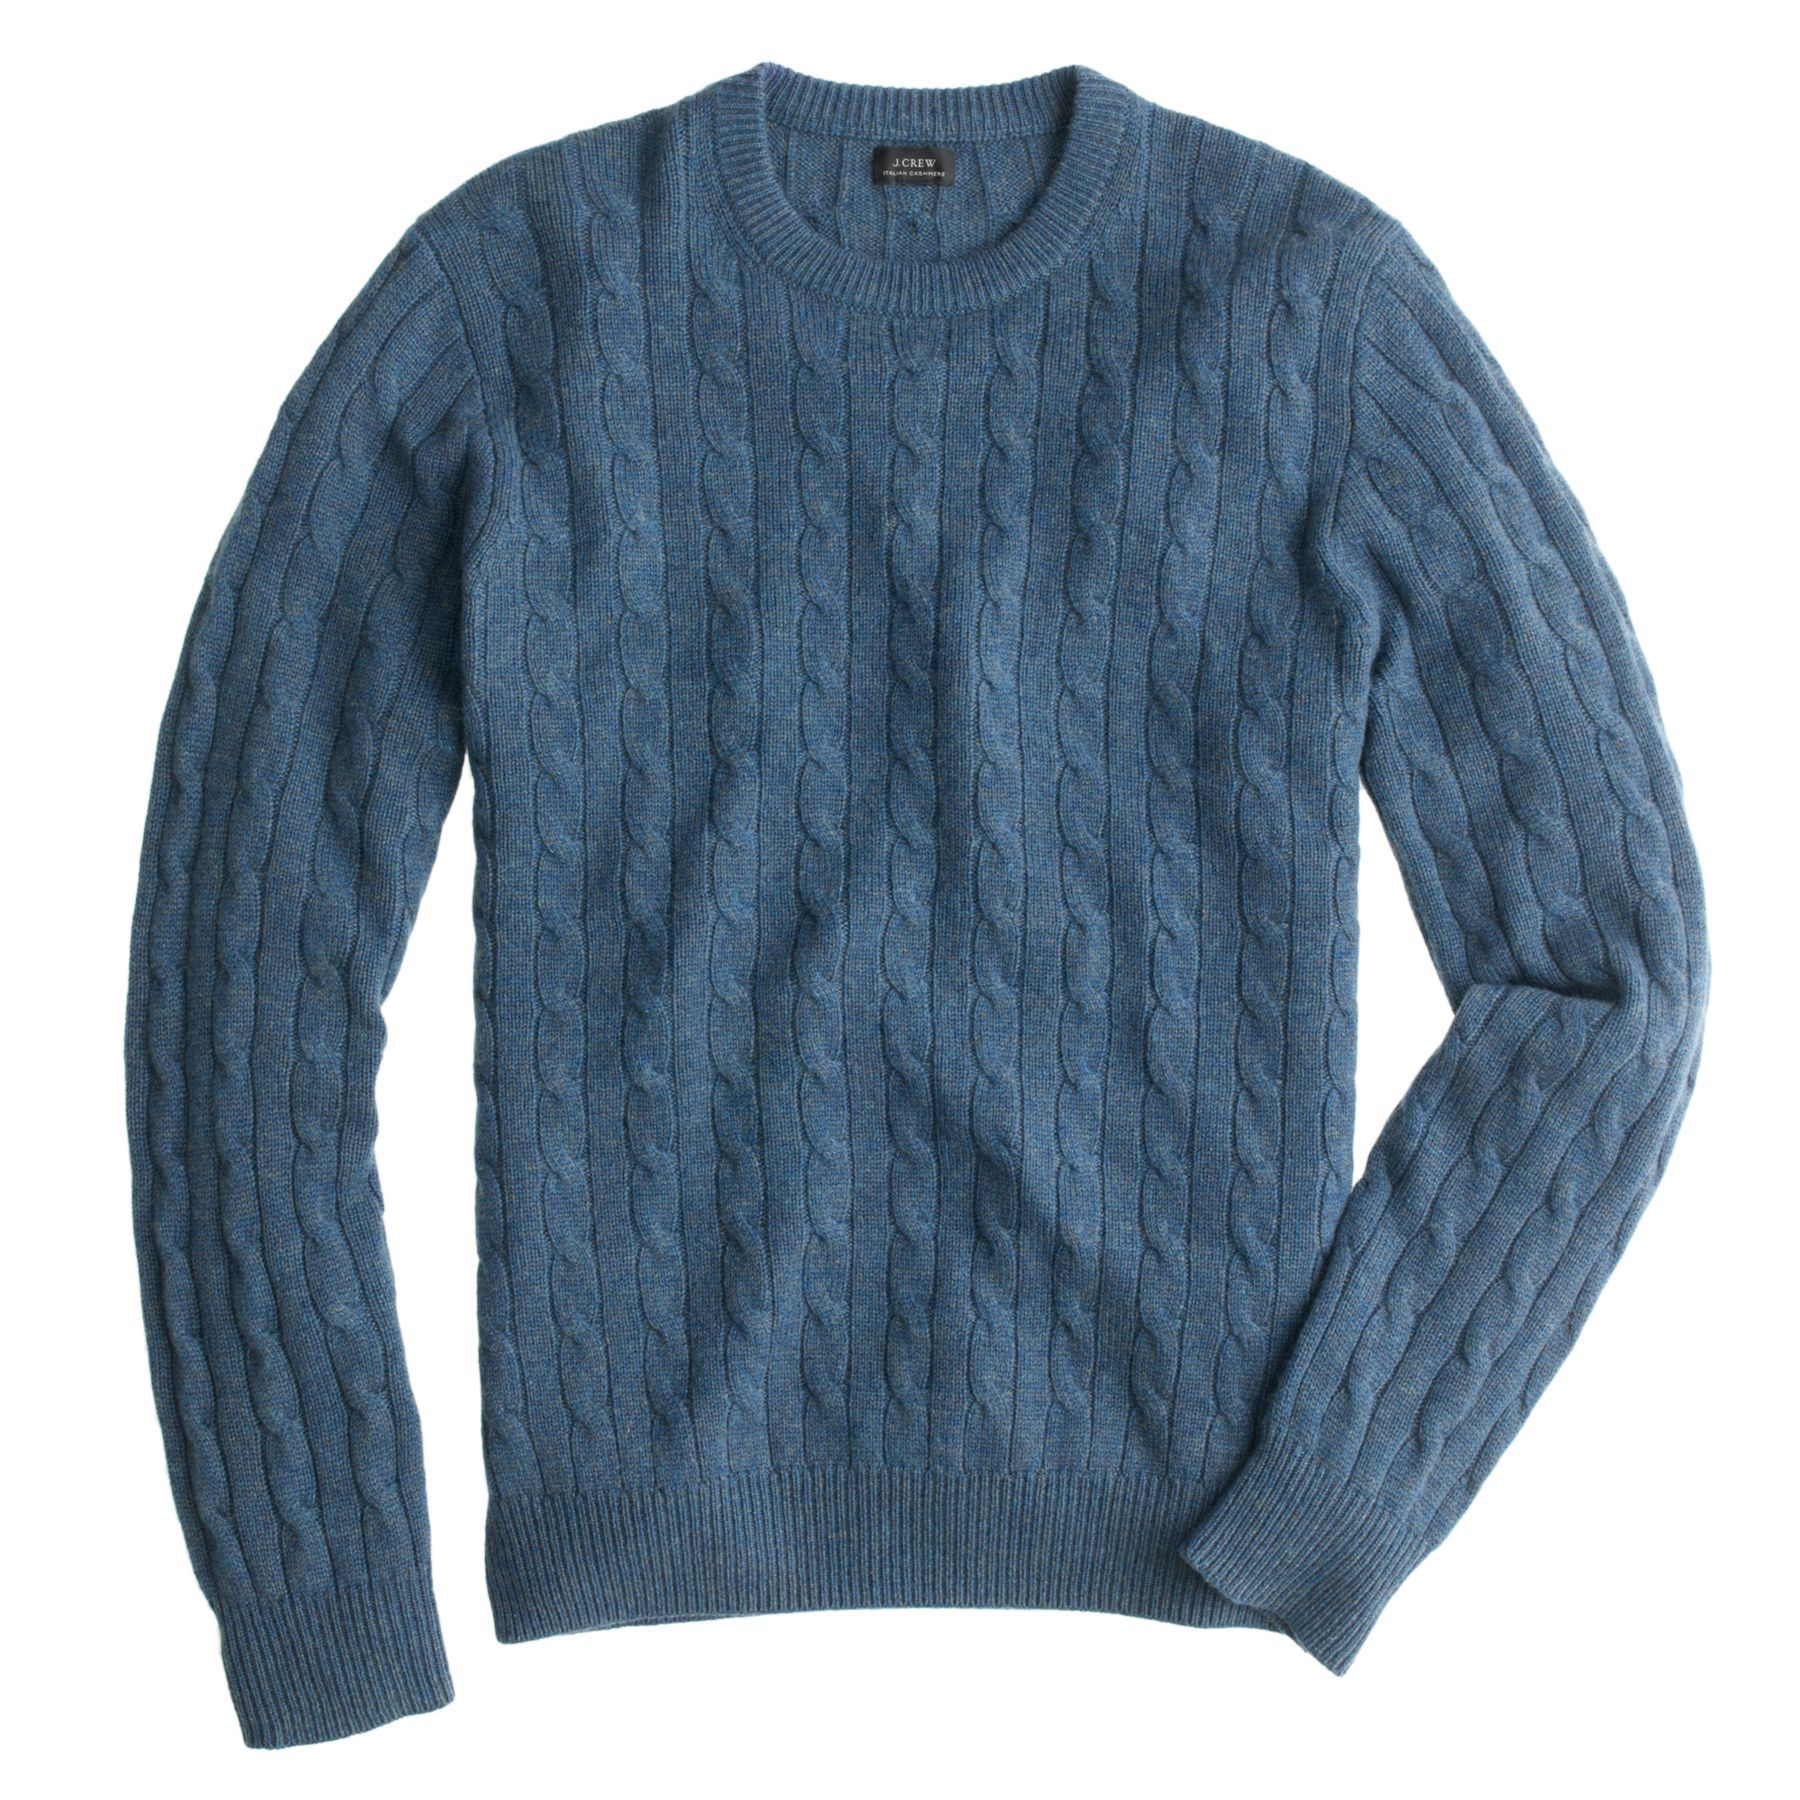 Italian cashmere cable sweater | Knitwear men, Mens cashmere